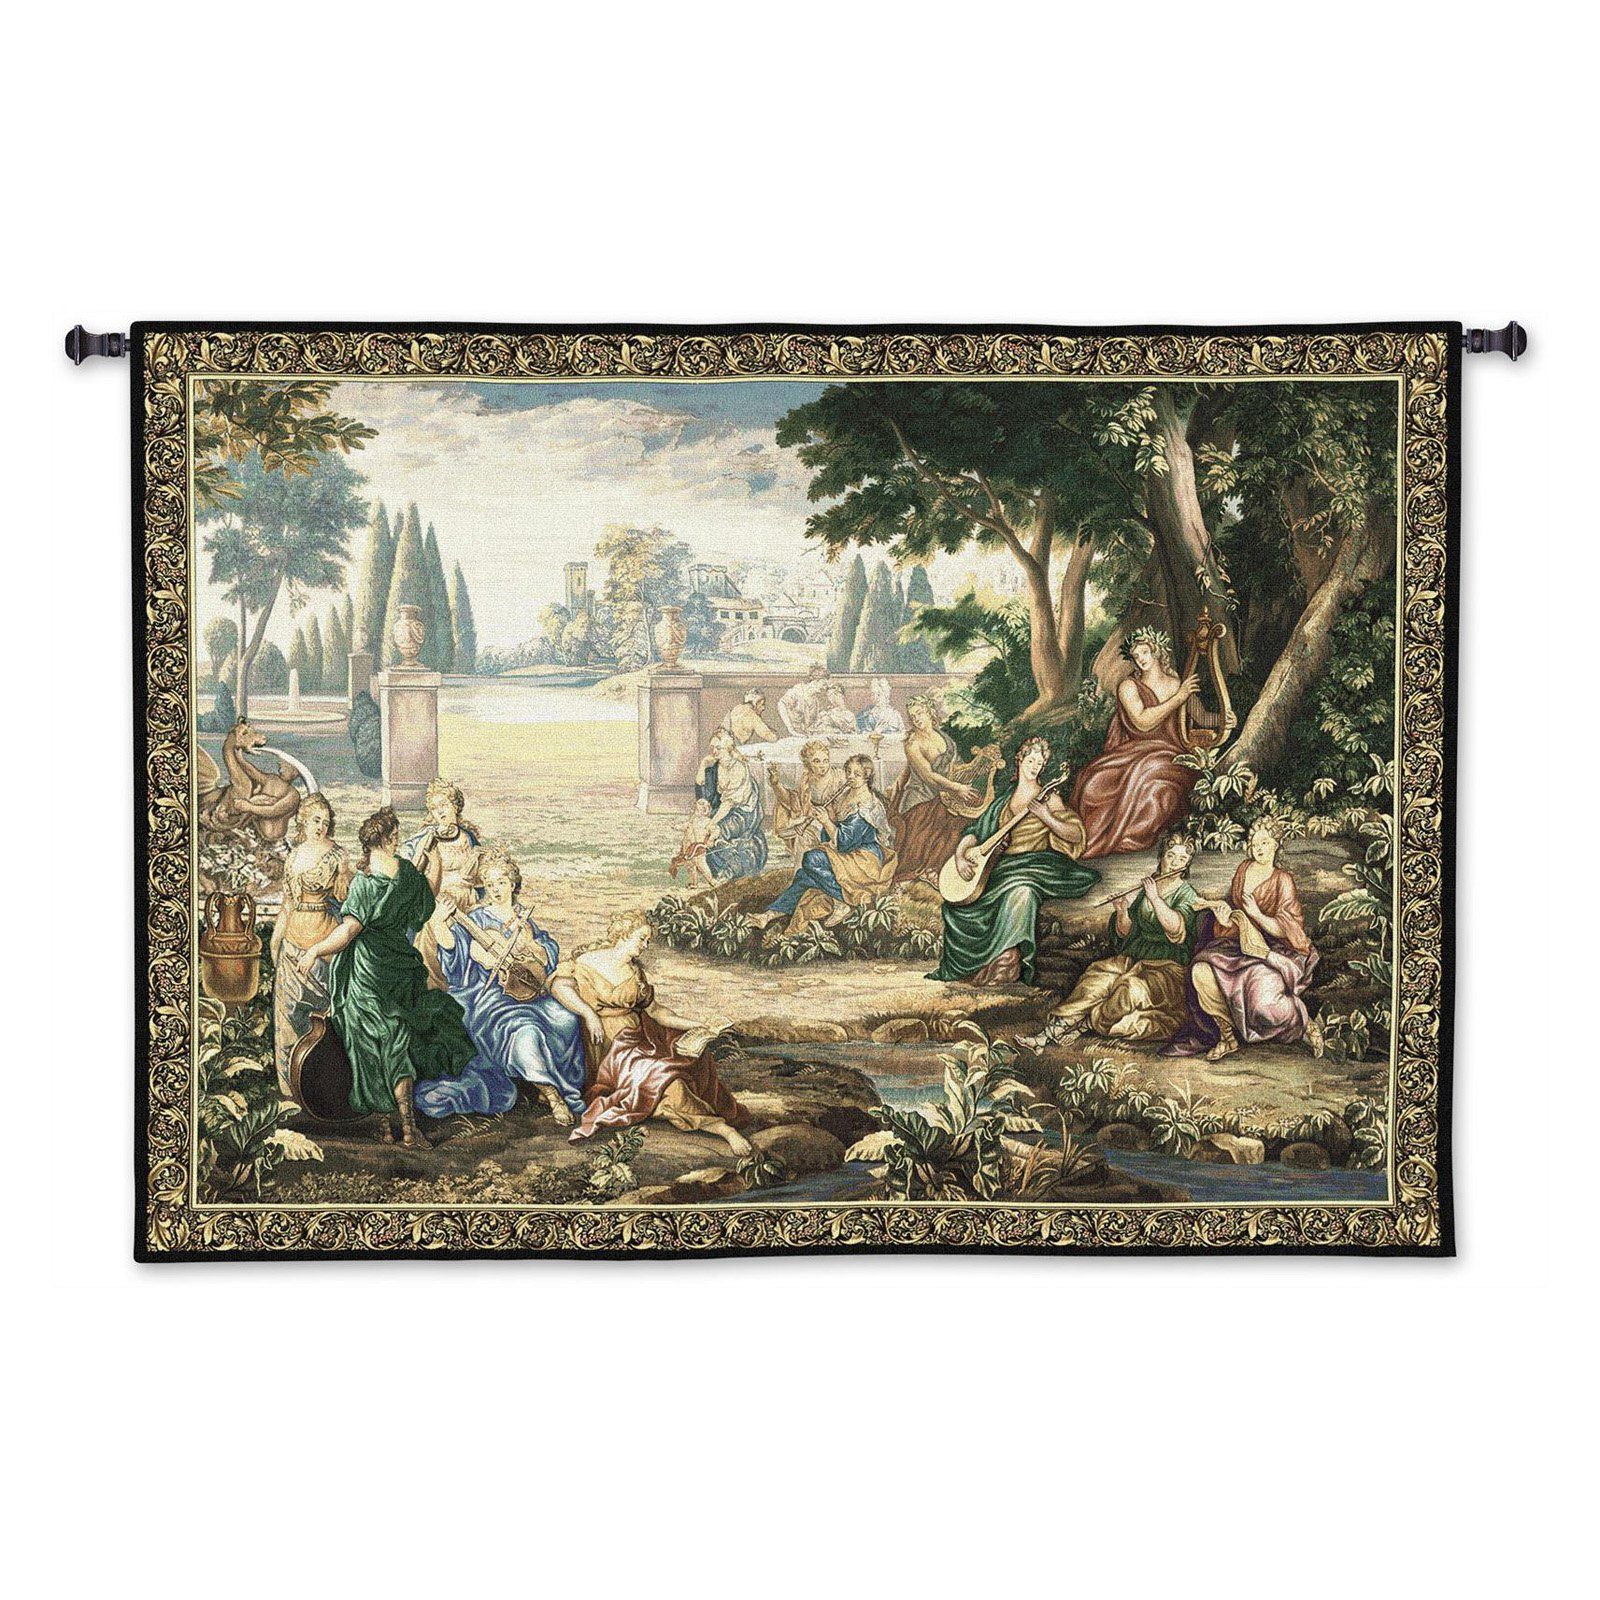 Fine Art Tapestries Romantic Pastoral Scene Cotton And Wool Pertaining To Most Recent Grandes Armoiries I European Tapestries (View 17 of 20)